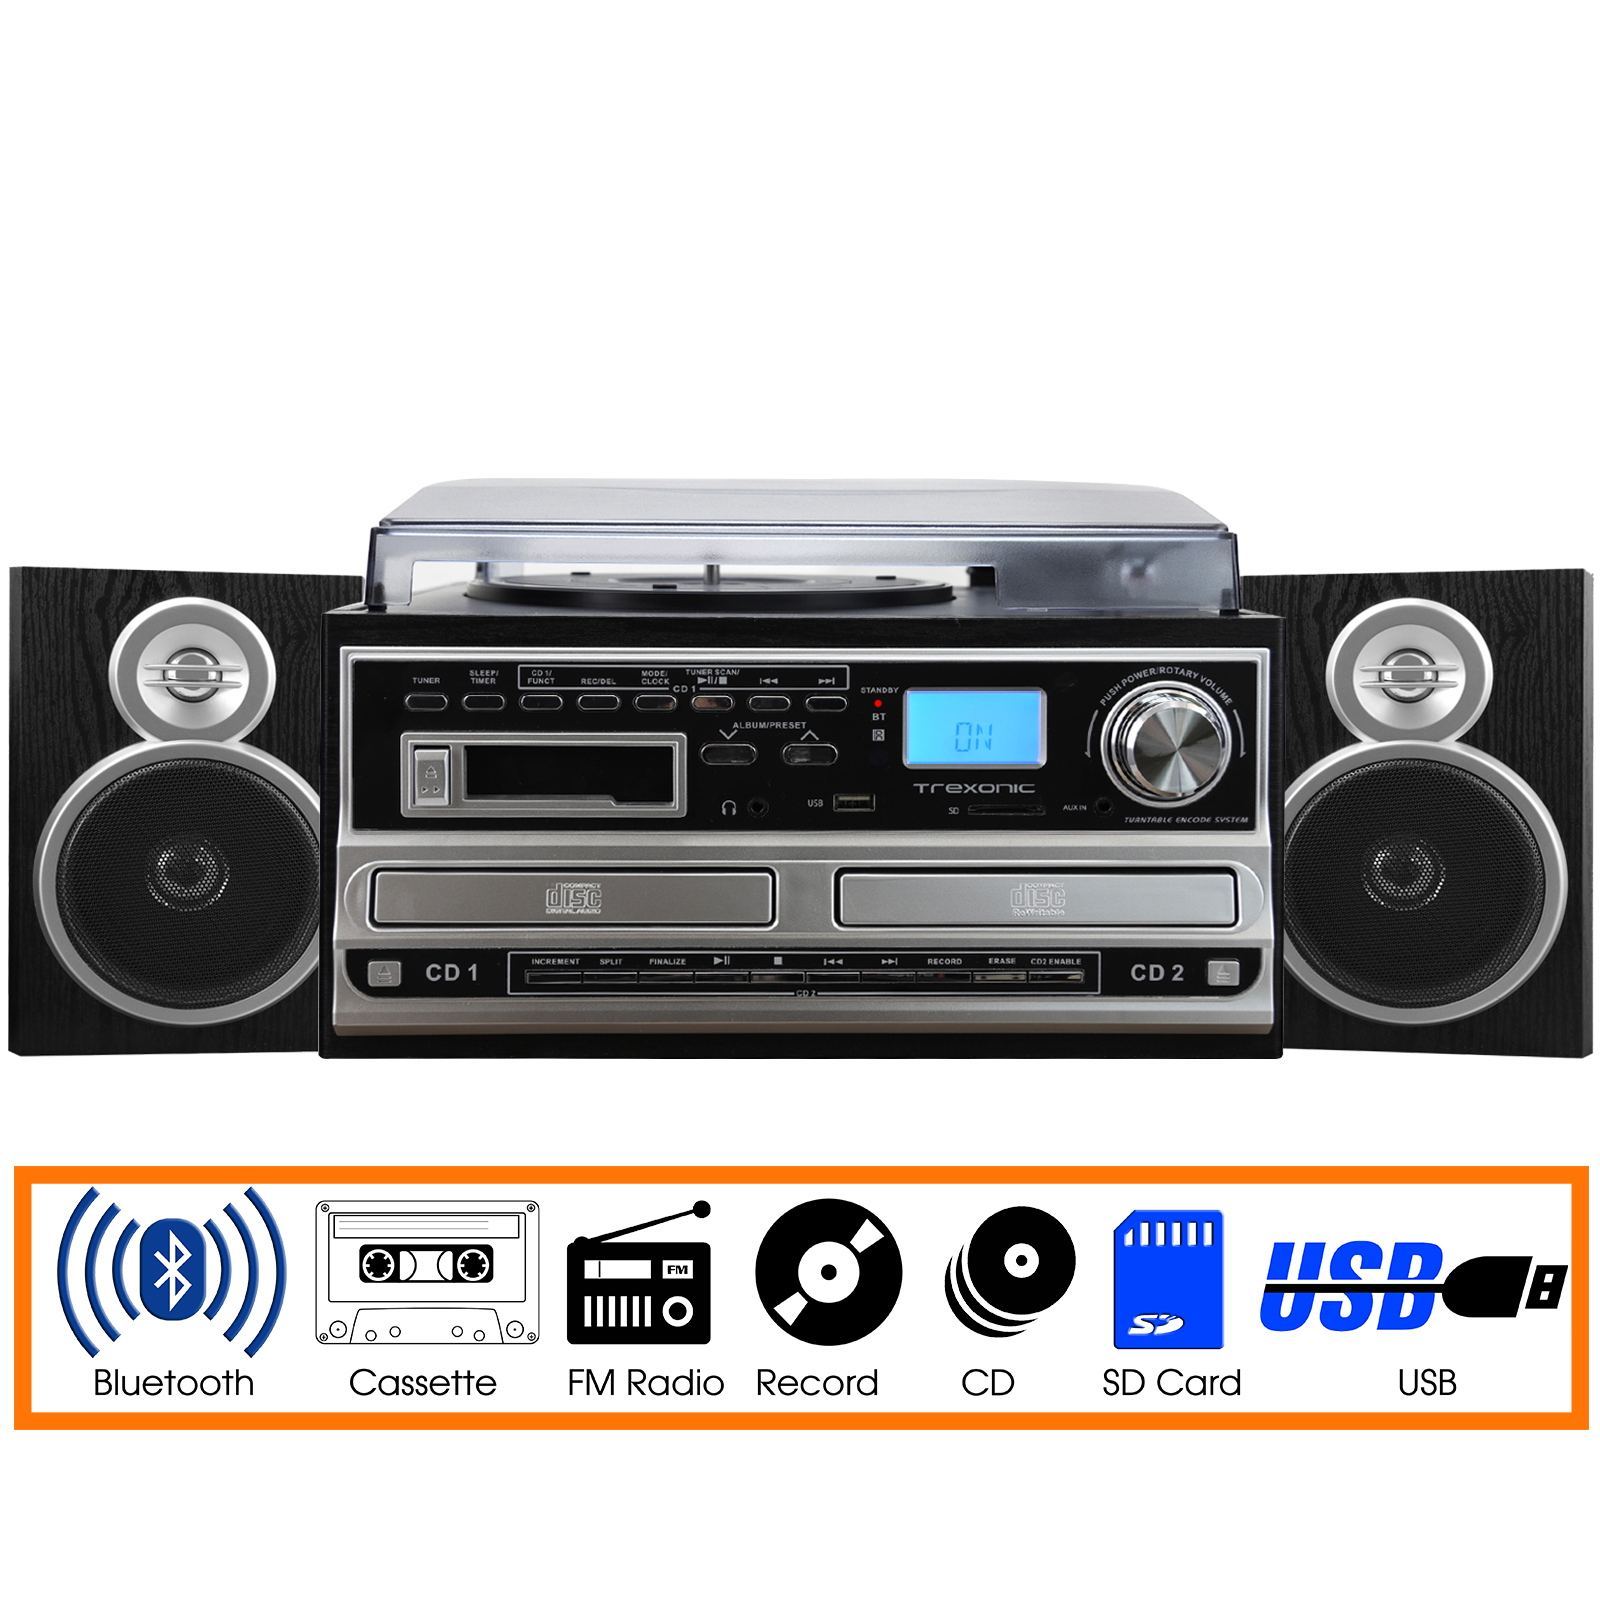 Trexonic 3-Speed Turntable With CD Player, CD Recorder, Cassette Player, Wired Shelf Speakers, FM Radio & CD... by Trexonic